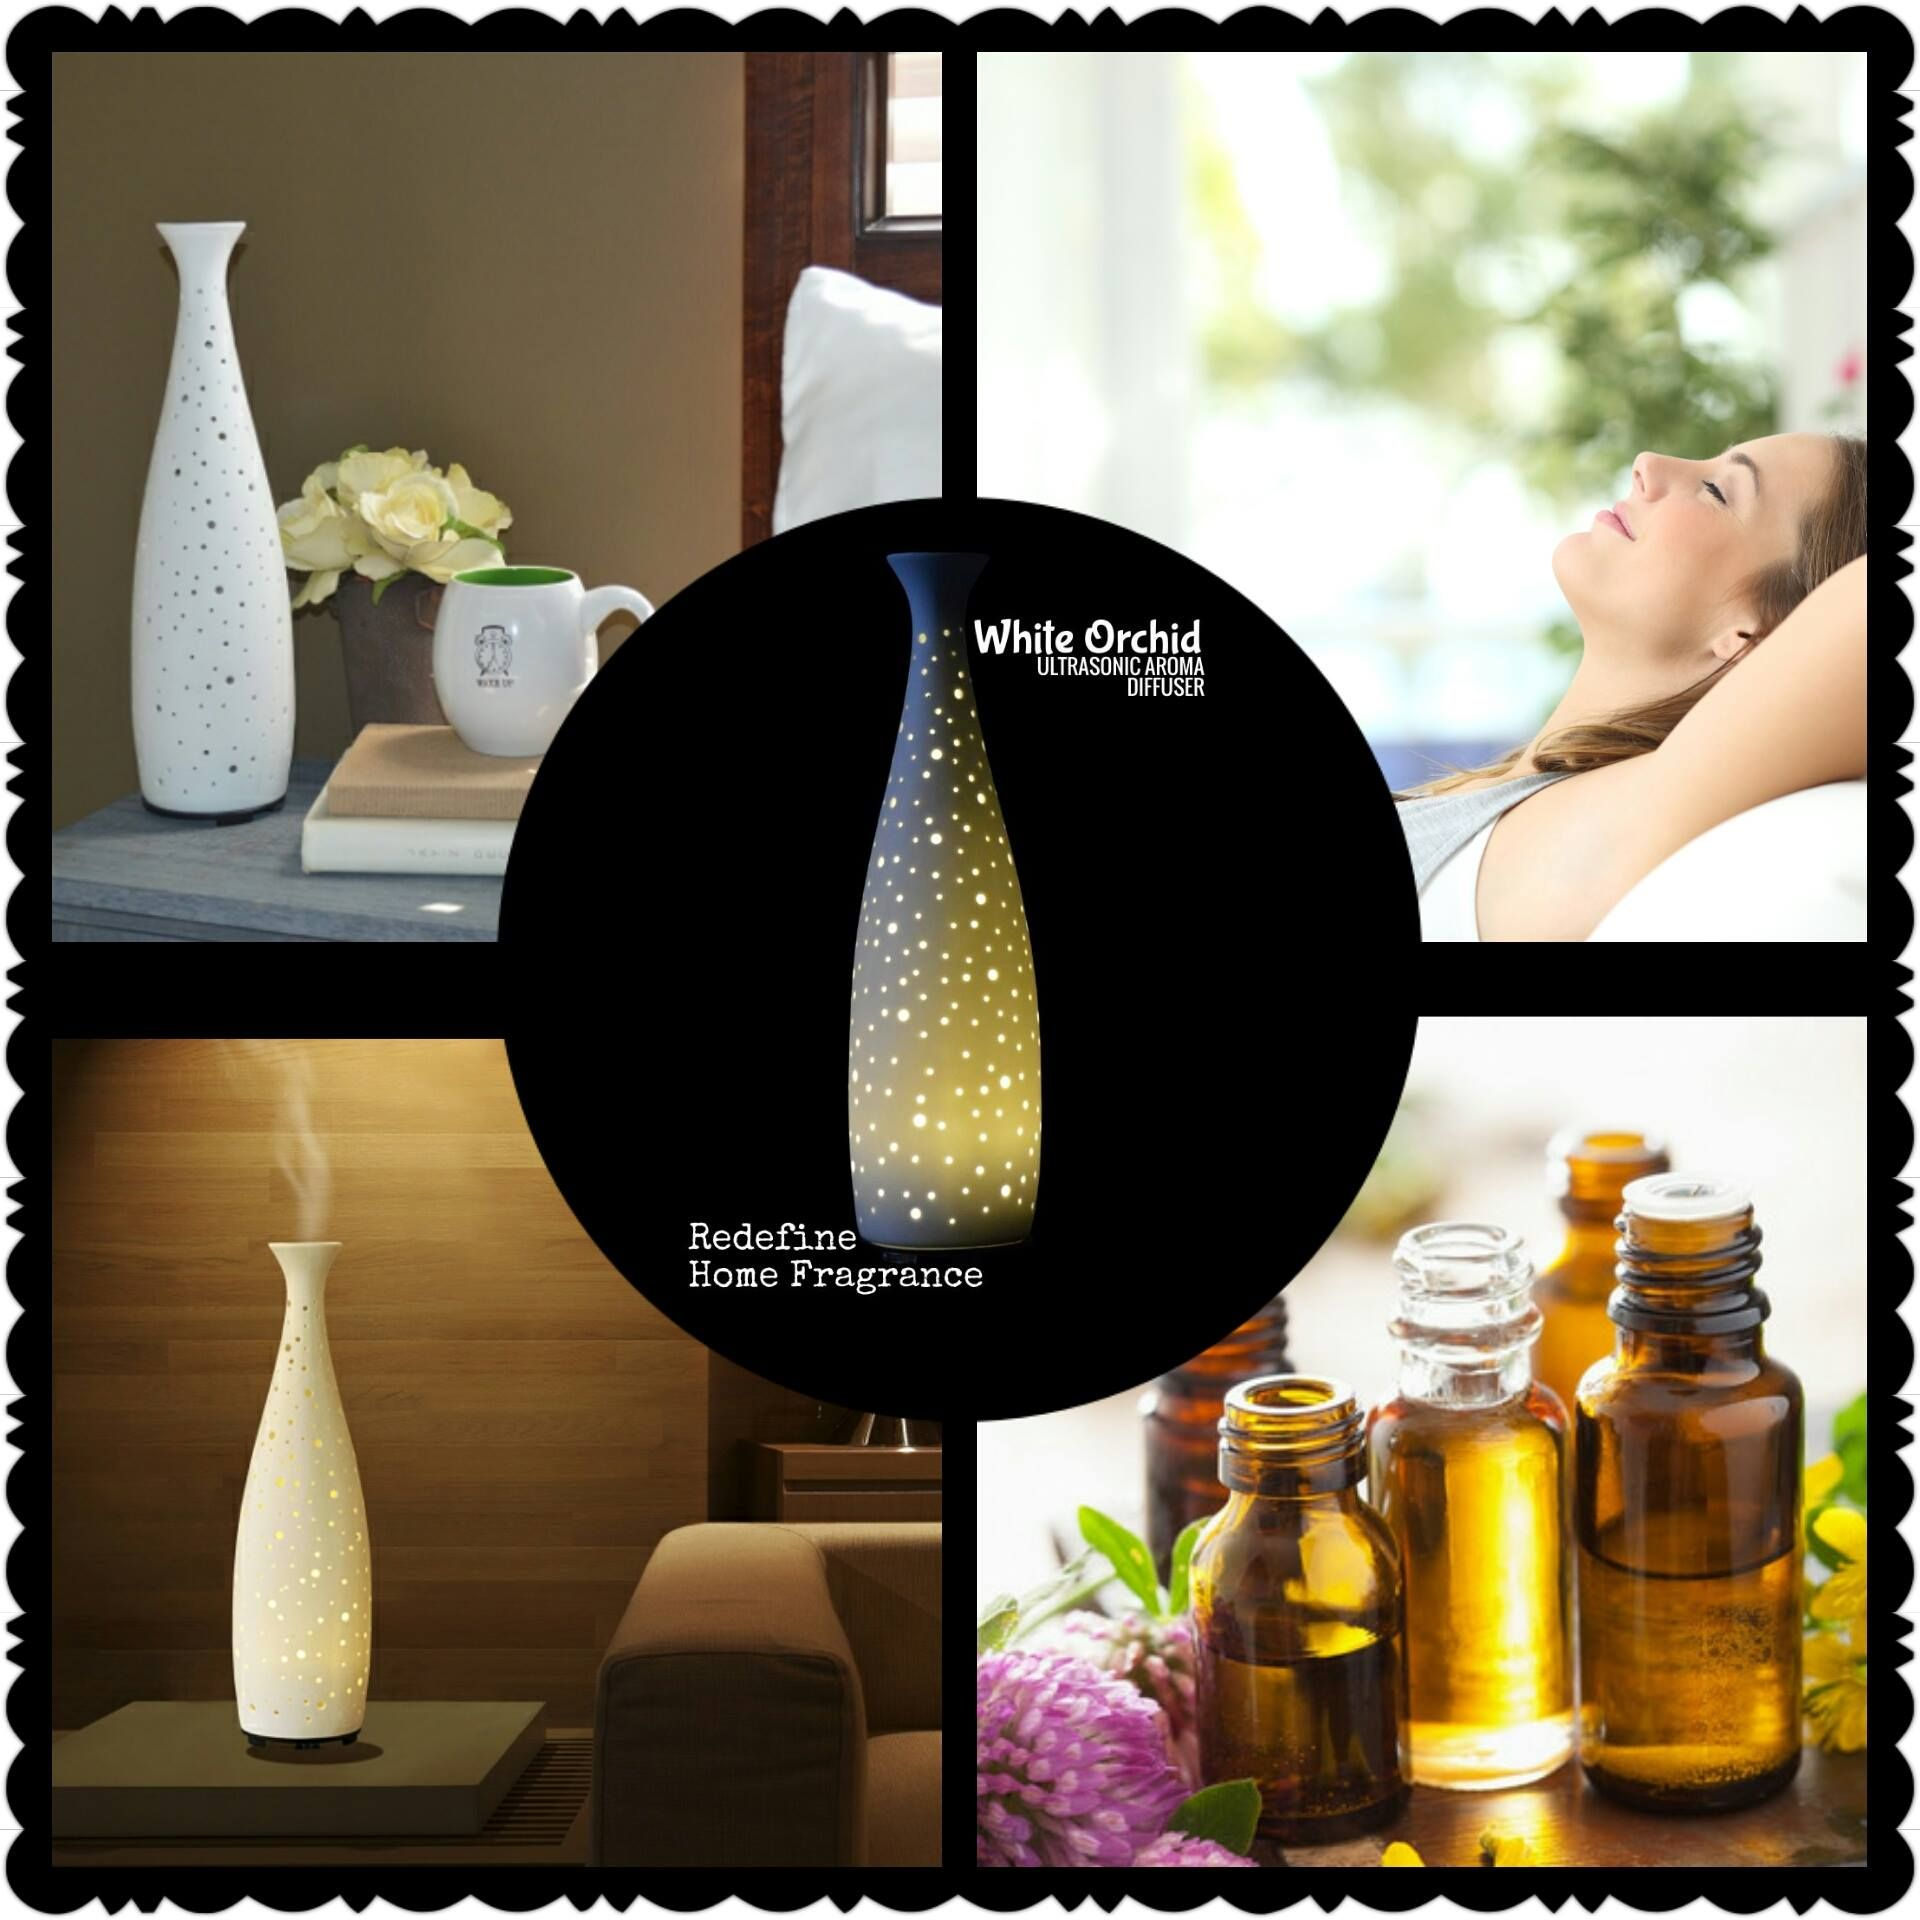 Enter Our Diffuser Giveaway!